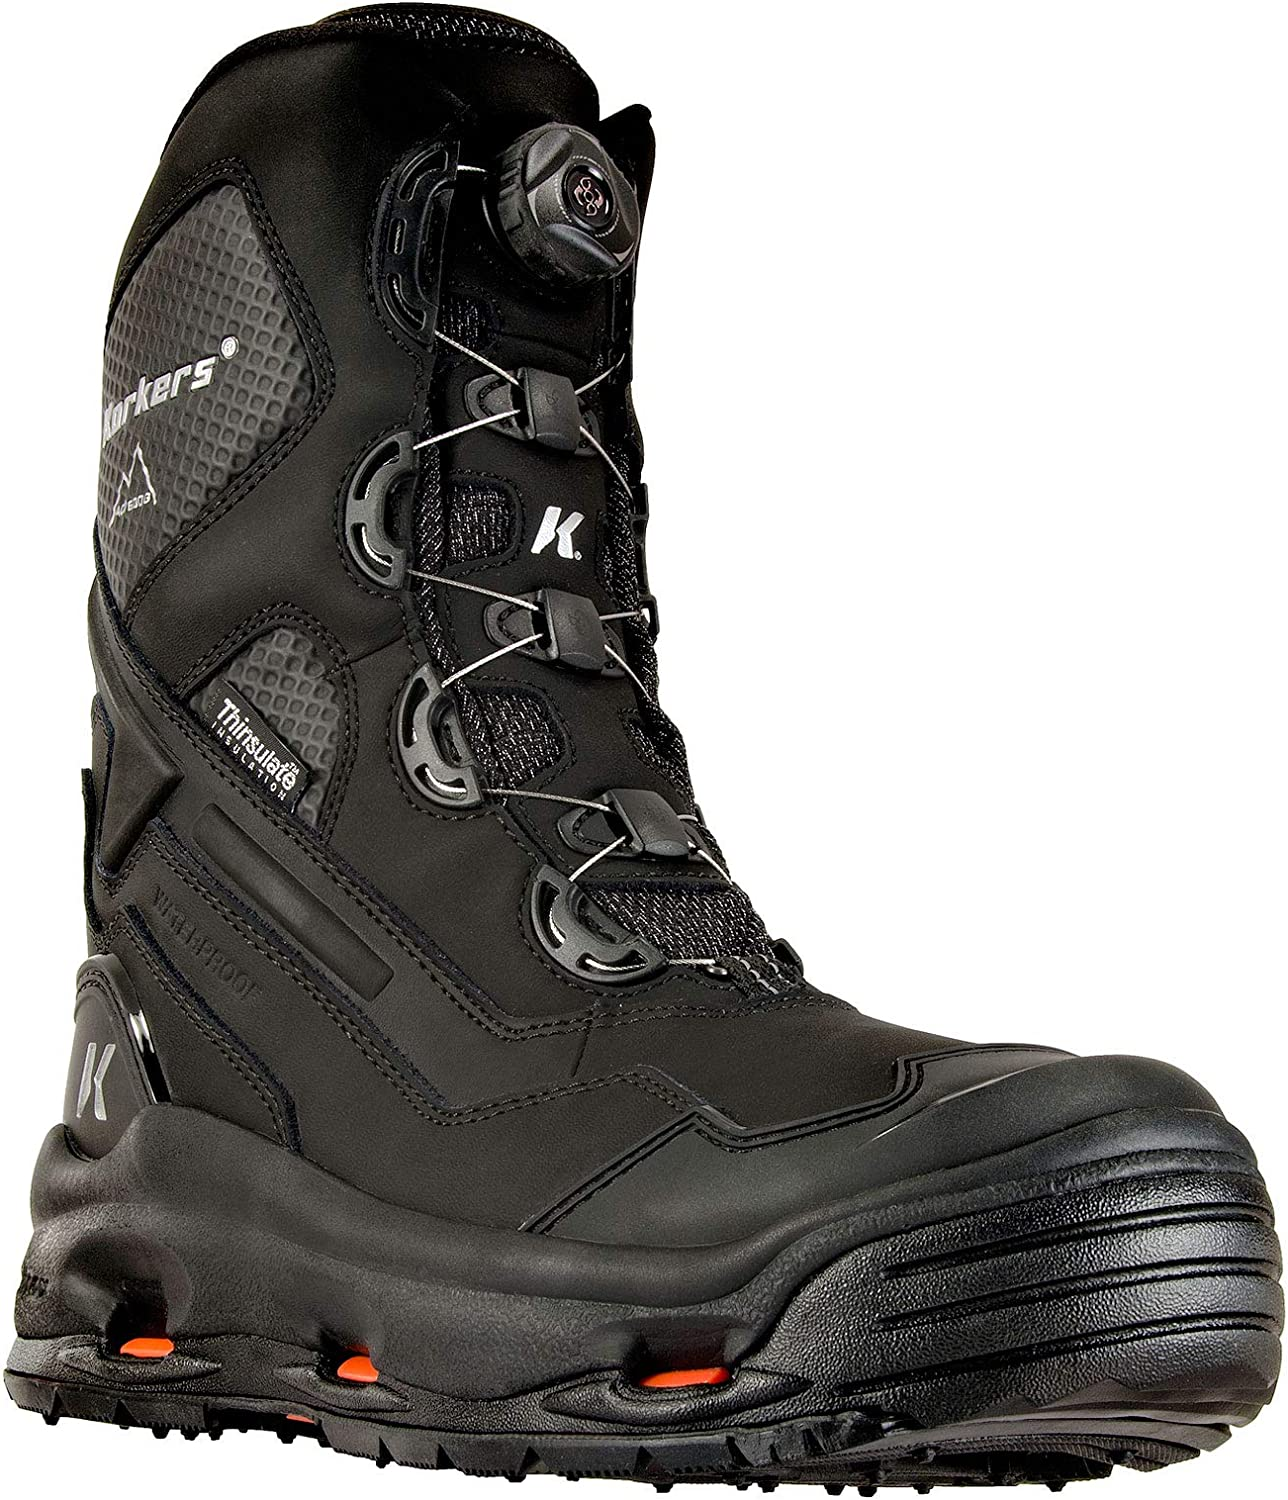 Korkers Men's Polar Vortex 600G Winter Boots